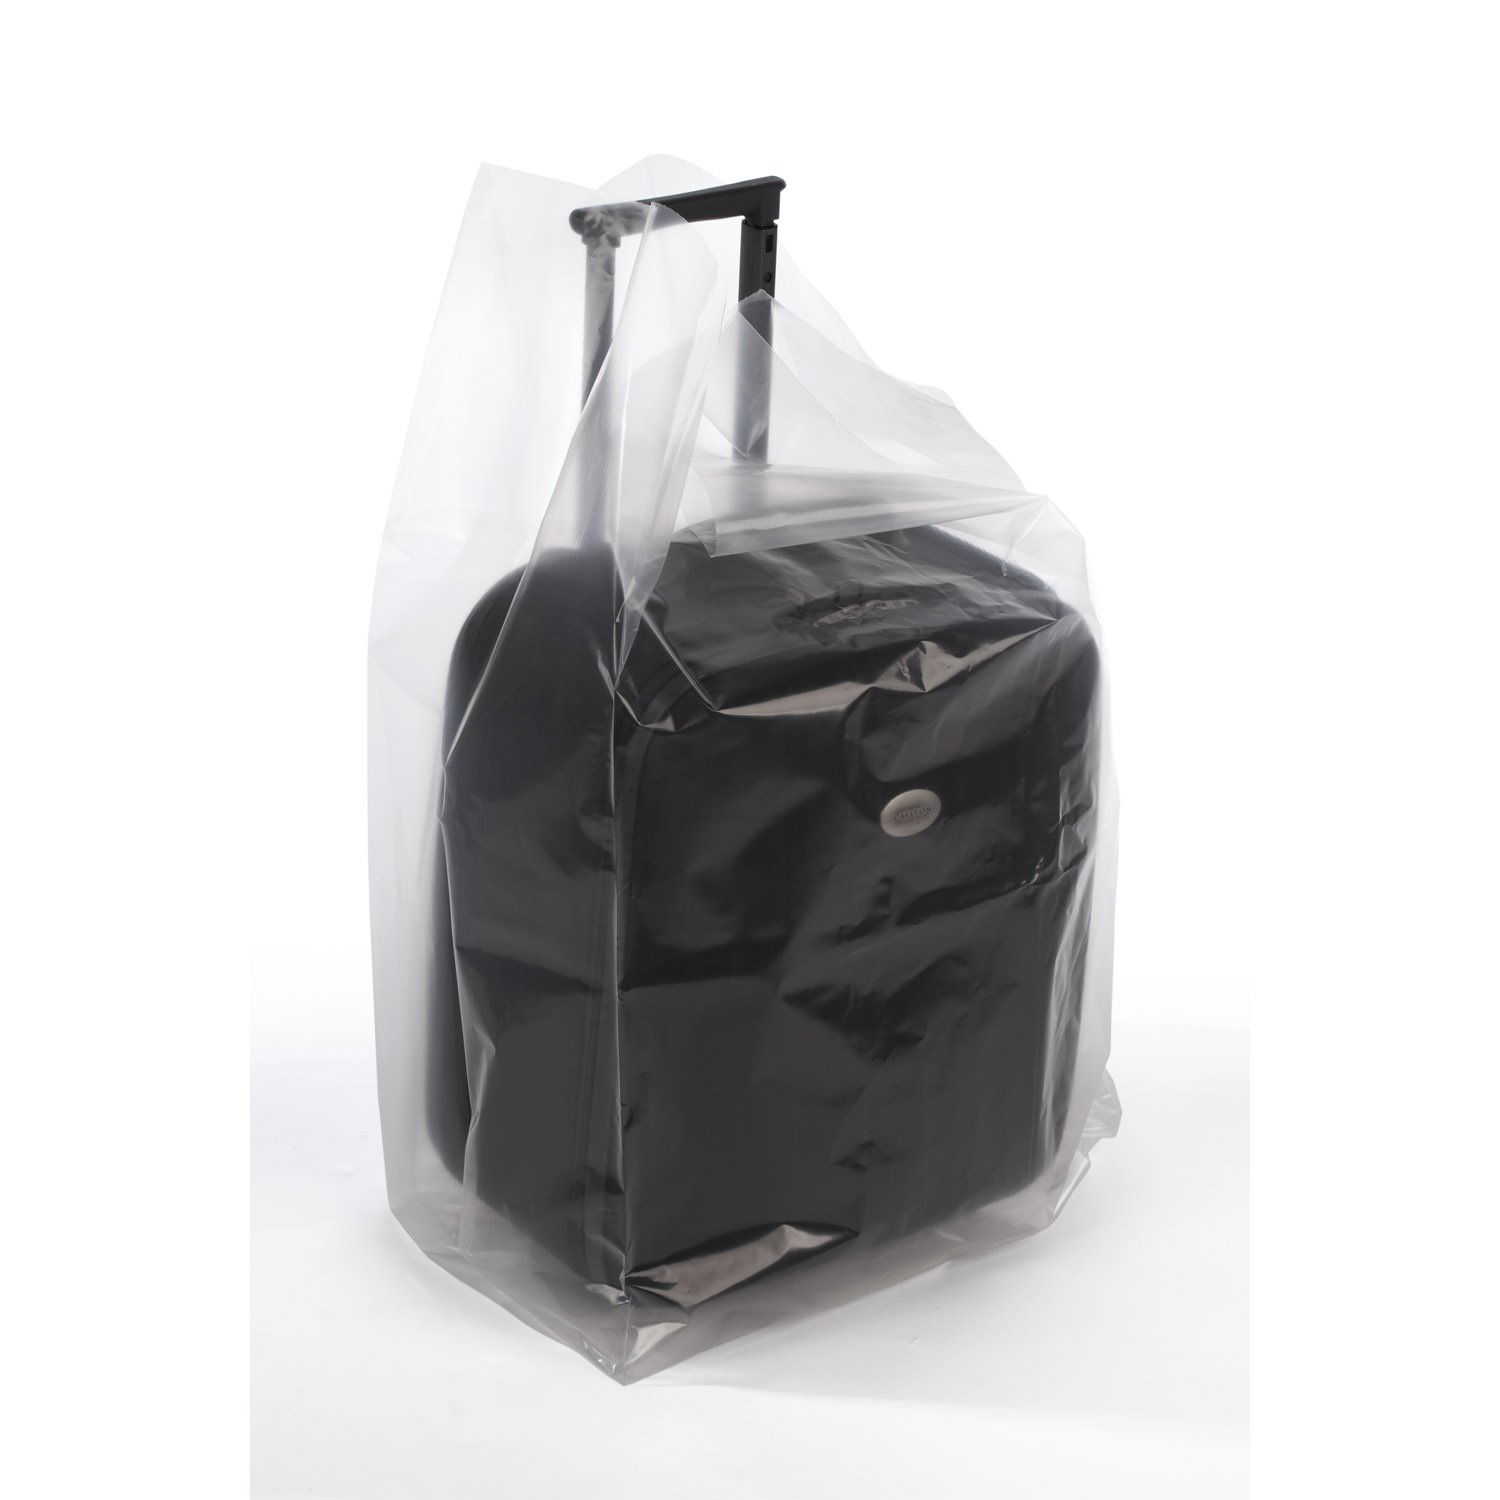 14'' x 14'' x 26'' x 3 mil Clear Eco-Manufactured Plastic Side-Gusseted Bags (Case of 250)